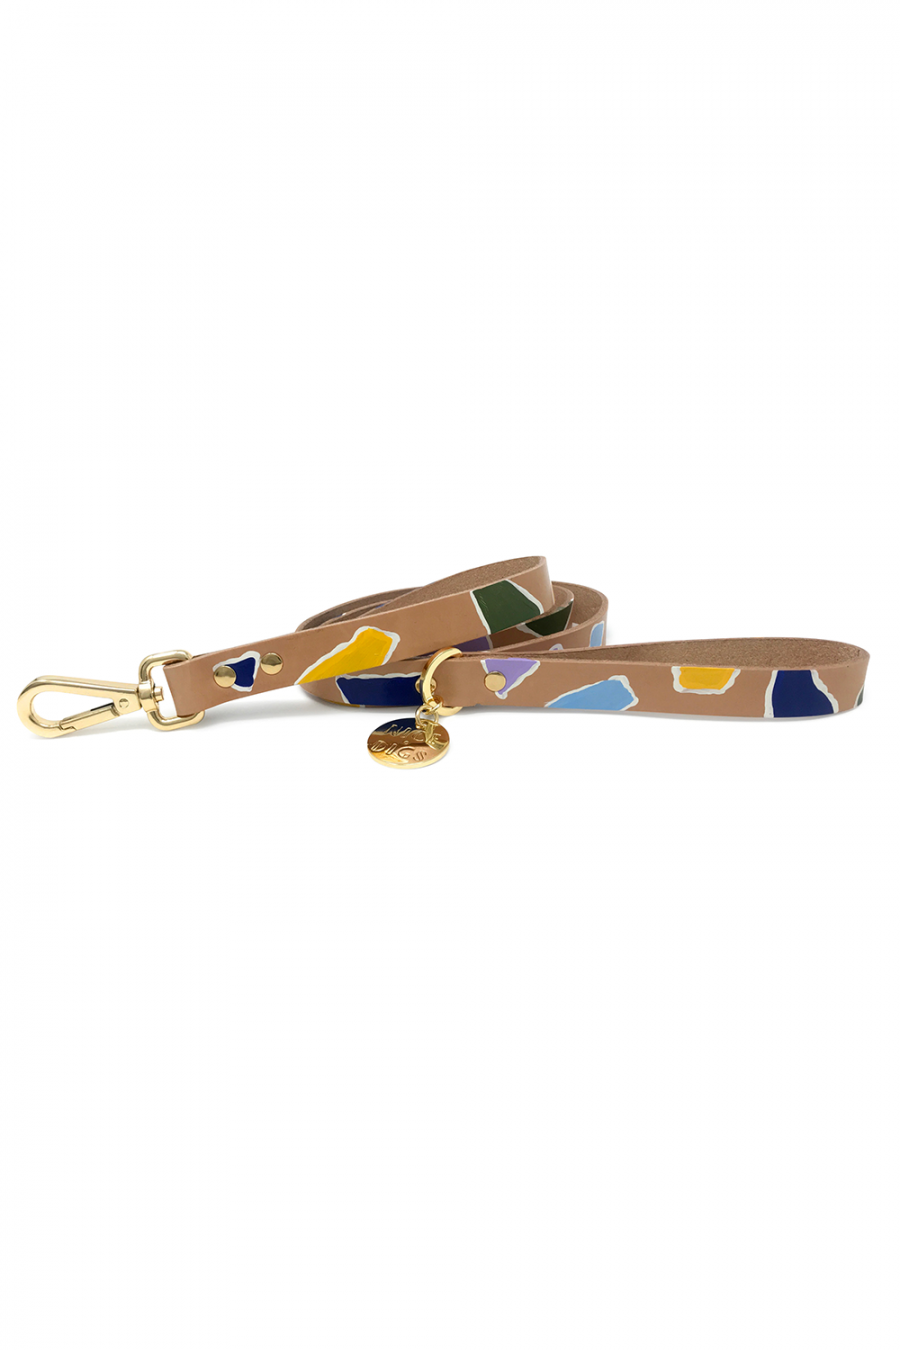 ROCK CANDY LEATHER LEASH